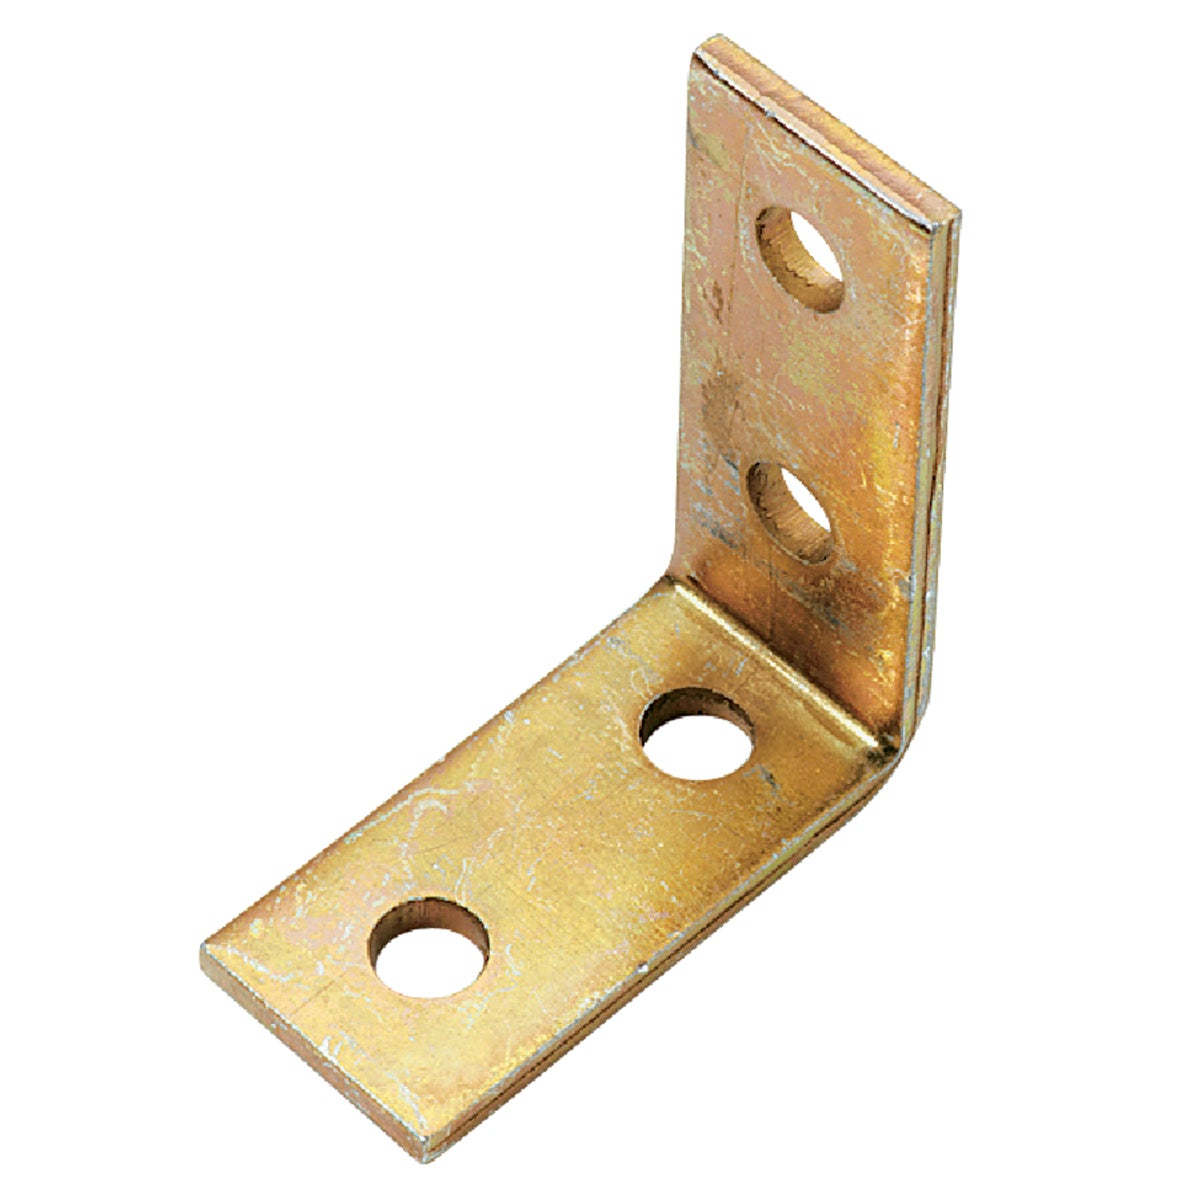 CORNER BRACKET - ZAB205-10 by Thomas & Betts